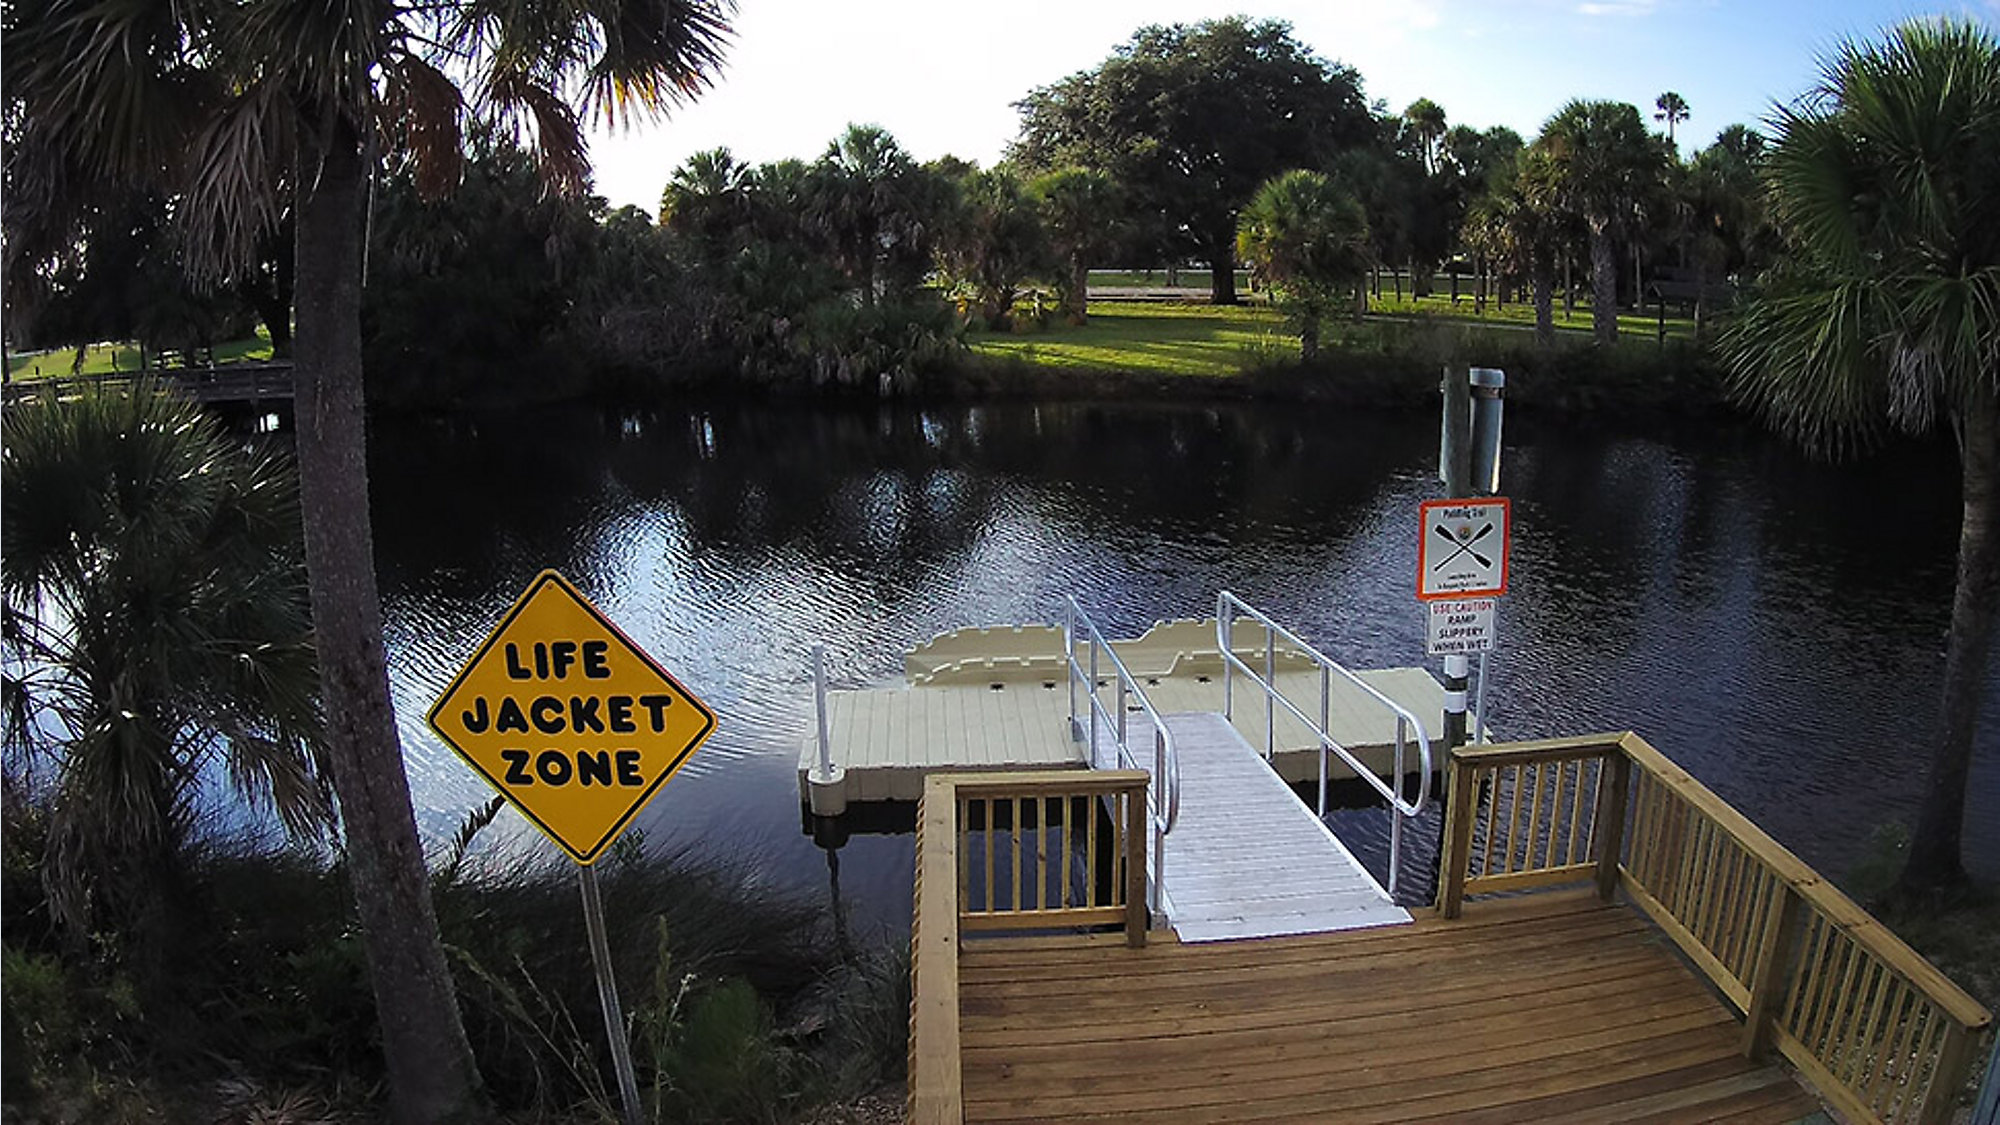 New Kayak Launch Opens at Linda Pedersen Park on map of lafayette county, map of routt county, map of glades county, map of st. lucie county, map of manatee county, map of madison county, map of st. johns county, map of prince george's county, map of forsyth county, map of missaukee county, map of martin county, map of duval county, map of chicot county, map of du page county, map of pasco county, map of gadsden county, map of washington county, map of stanislaus county, map of vanderburgh county, map of jackson county,